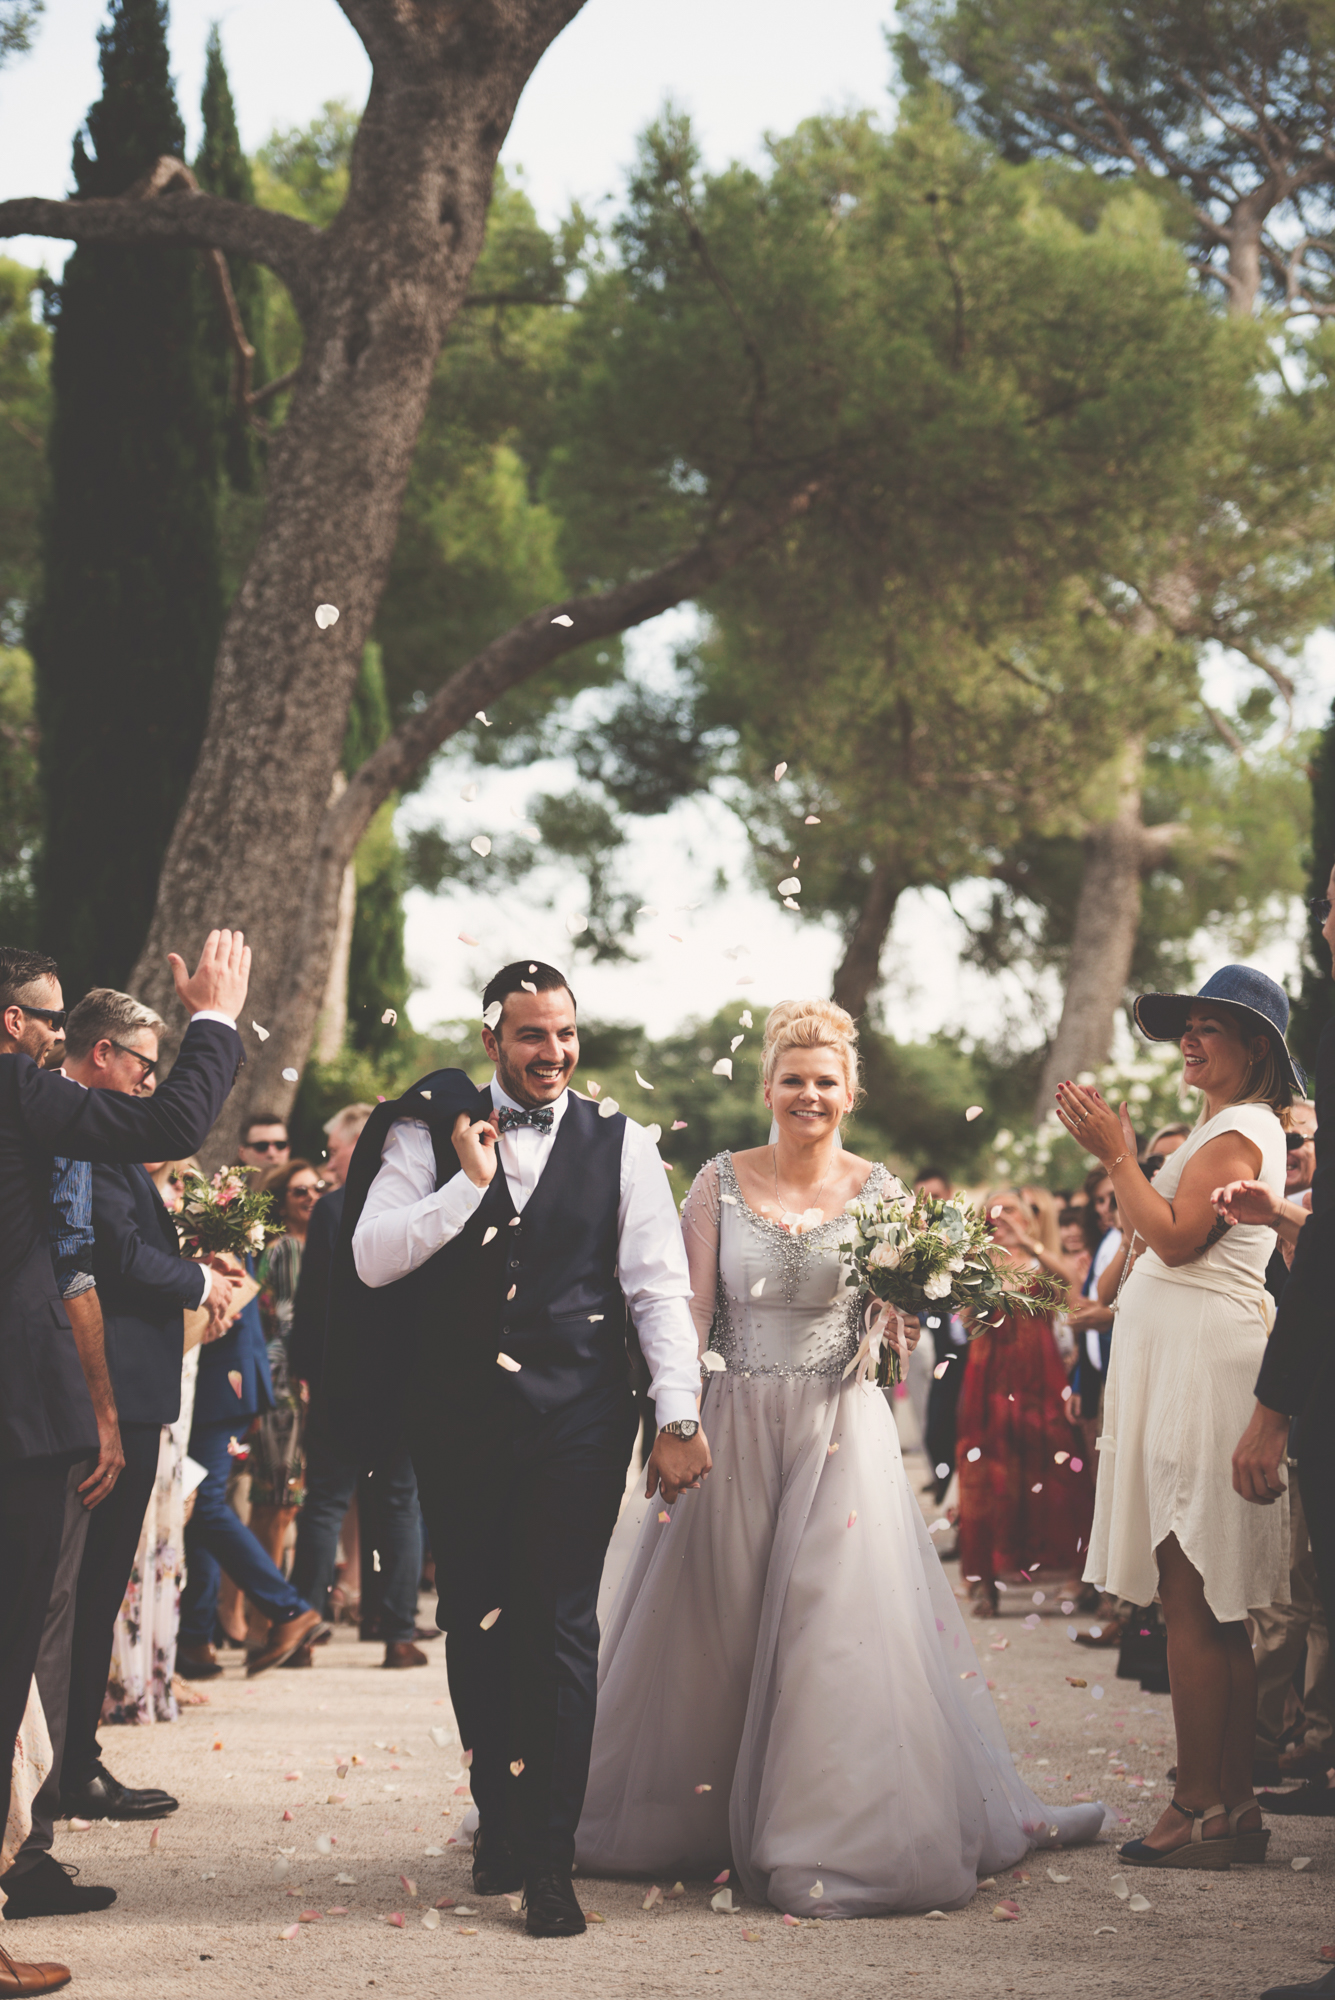 Outdoor wedding in Provence